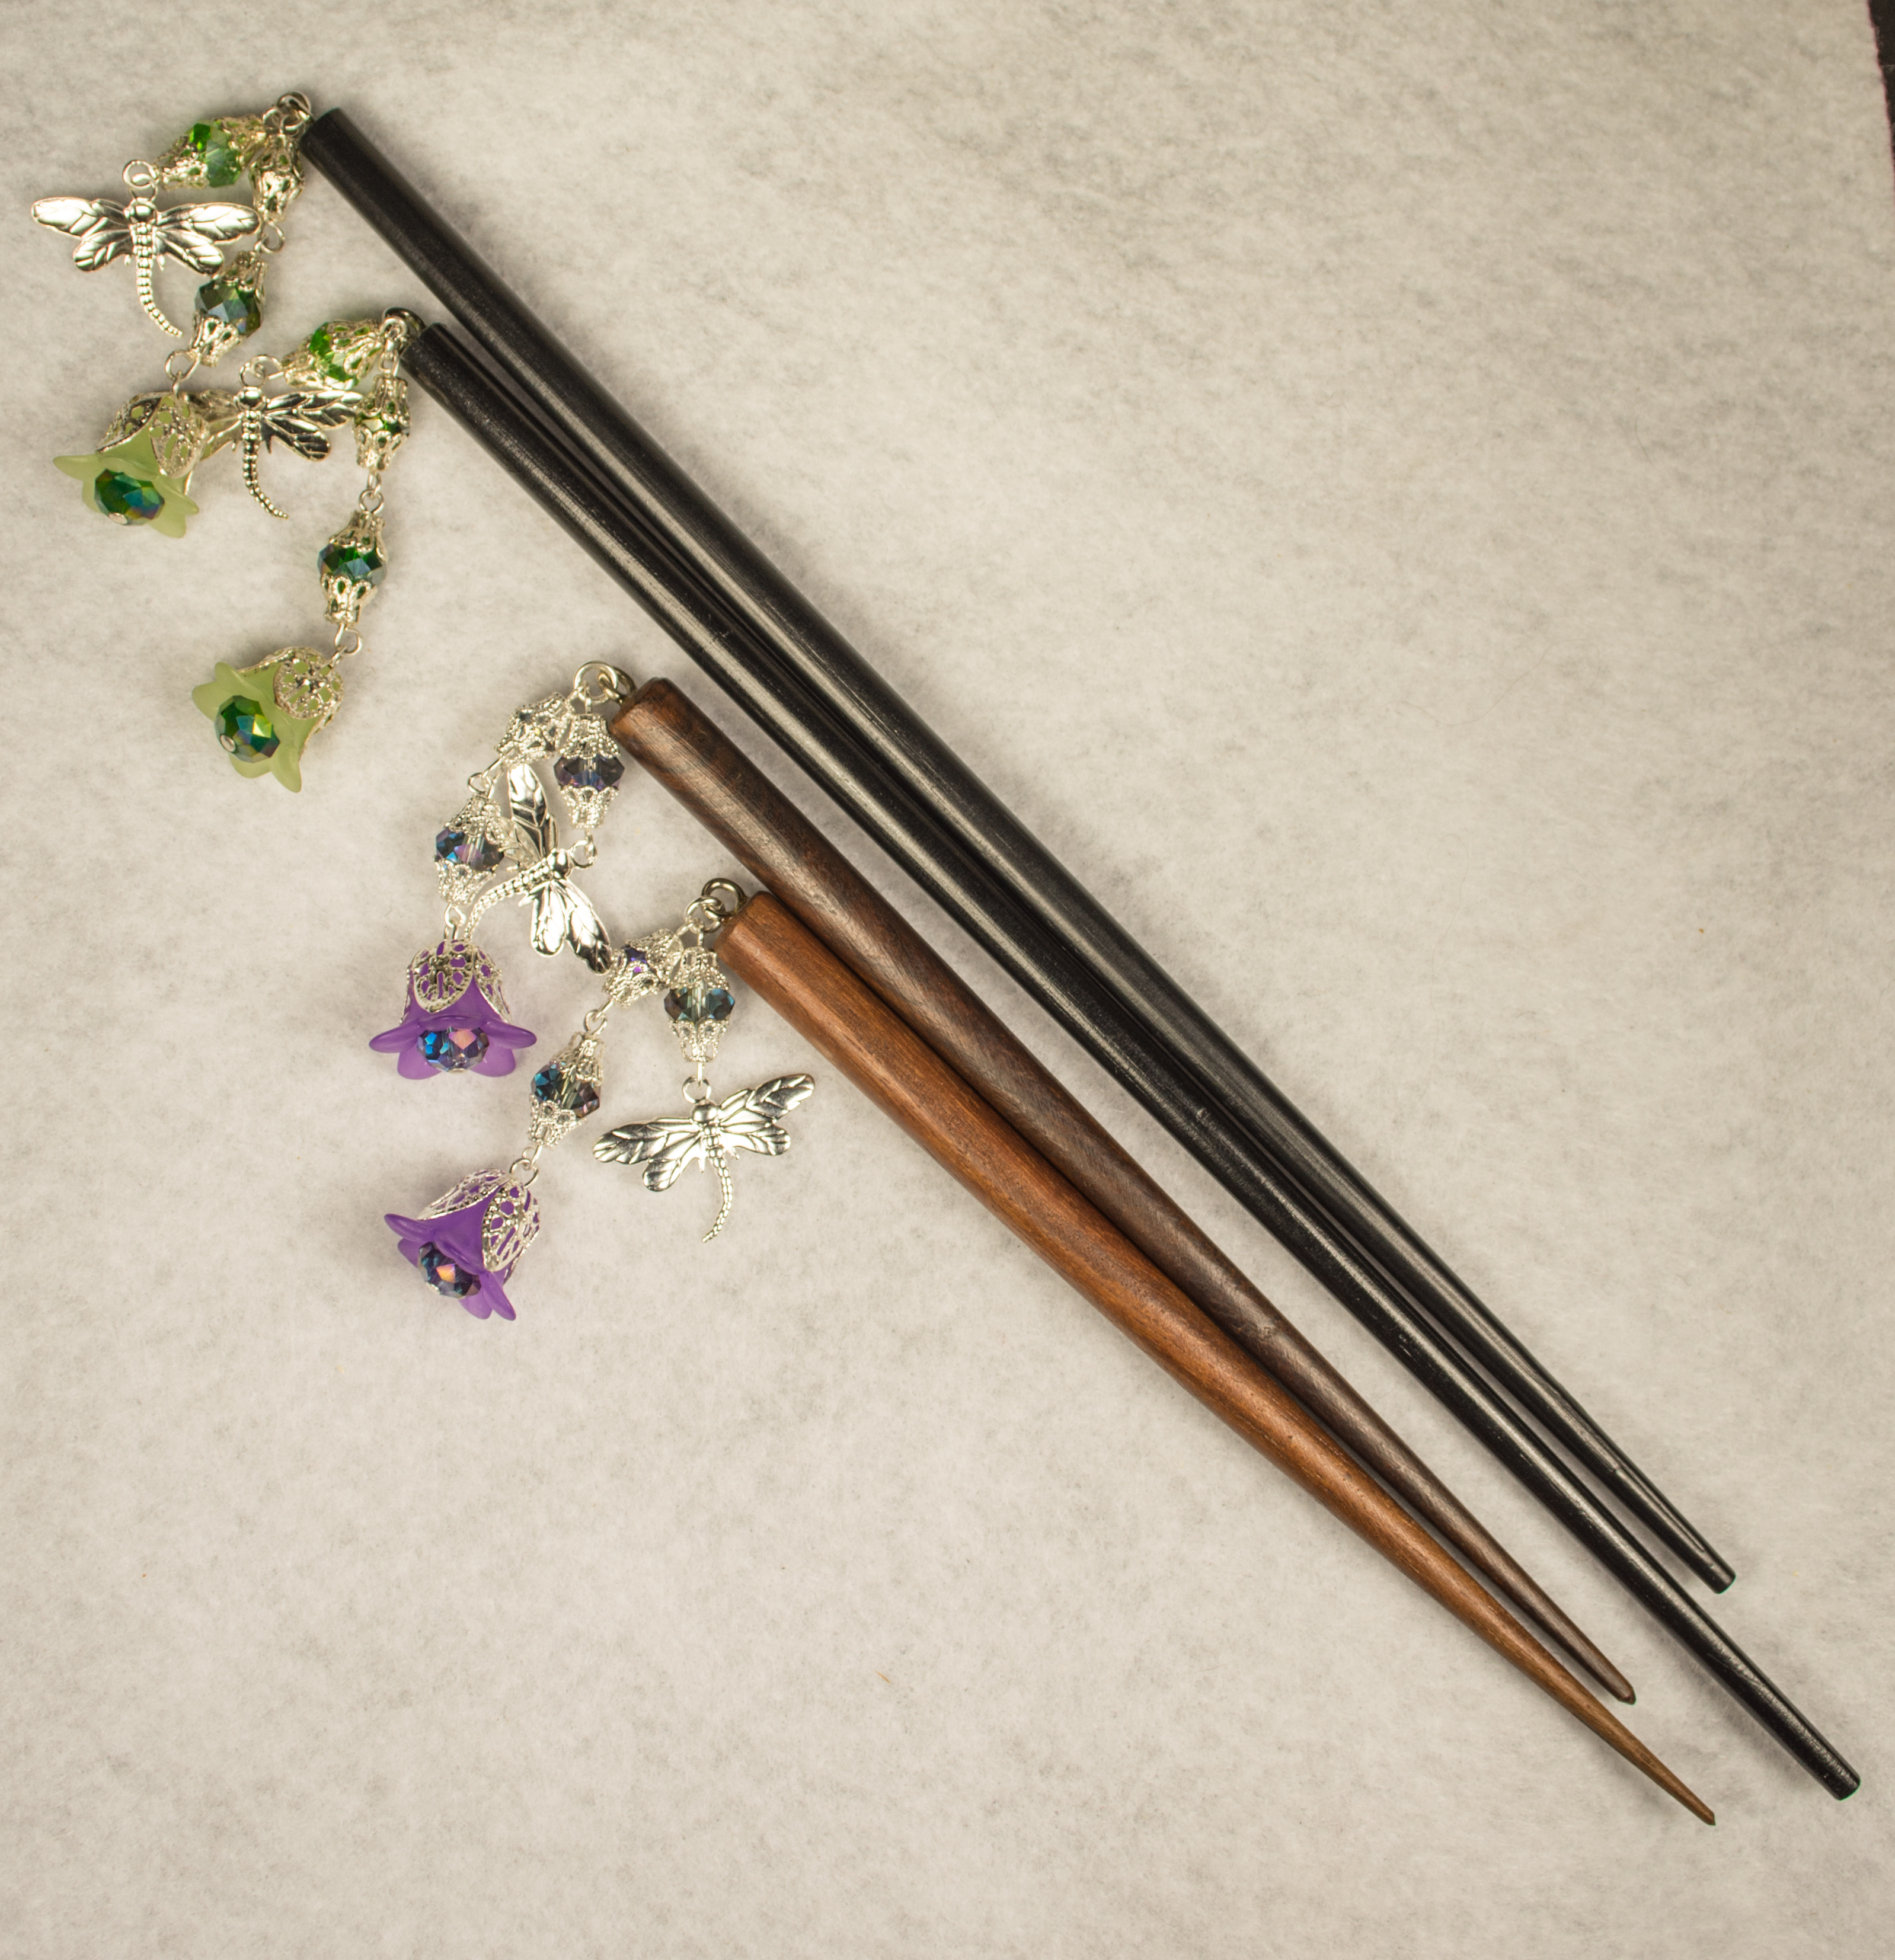 Dragonflies and Flowers Hair Sticks - A Case of Random